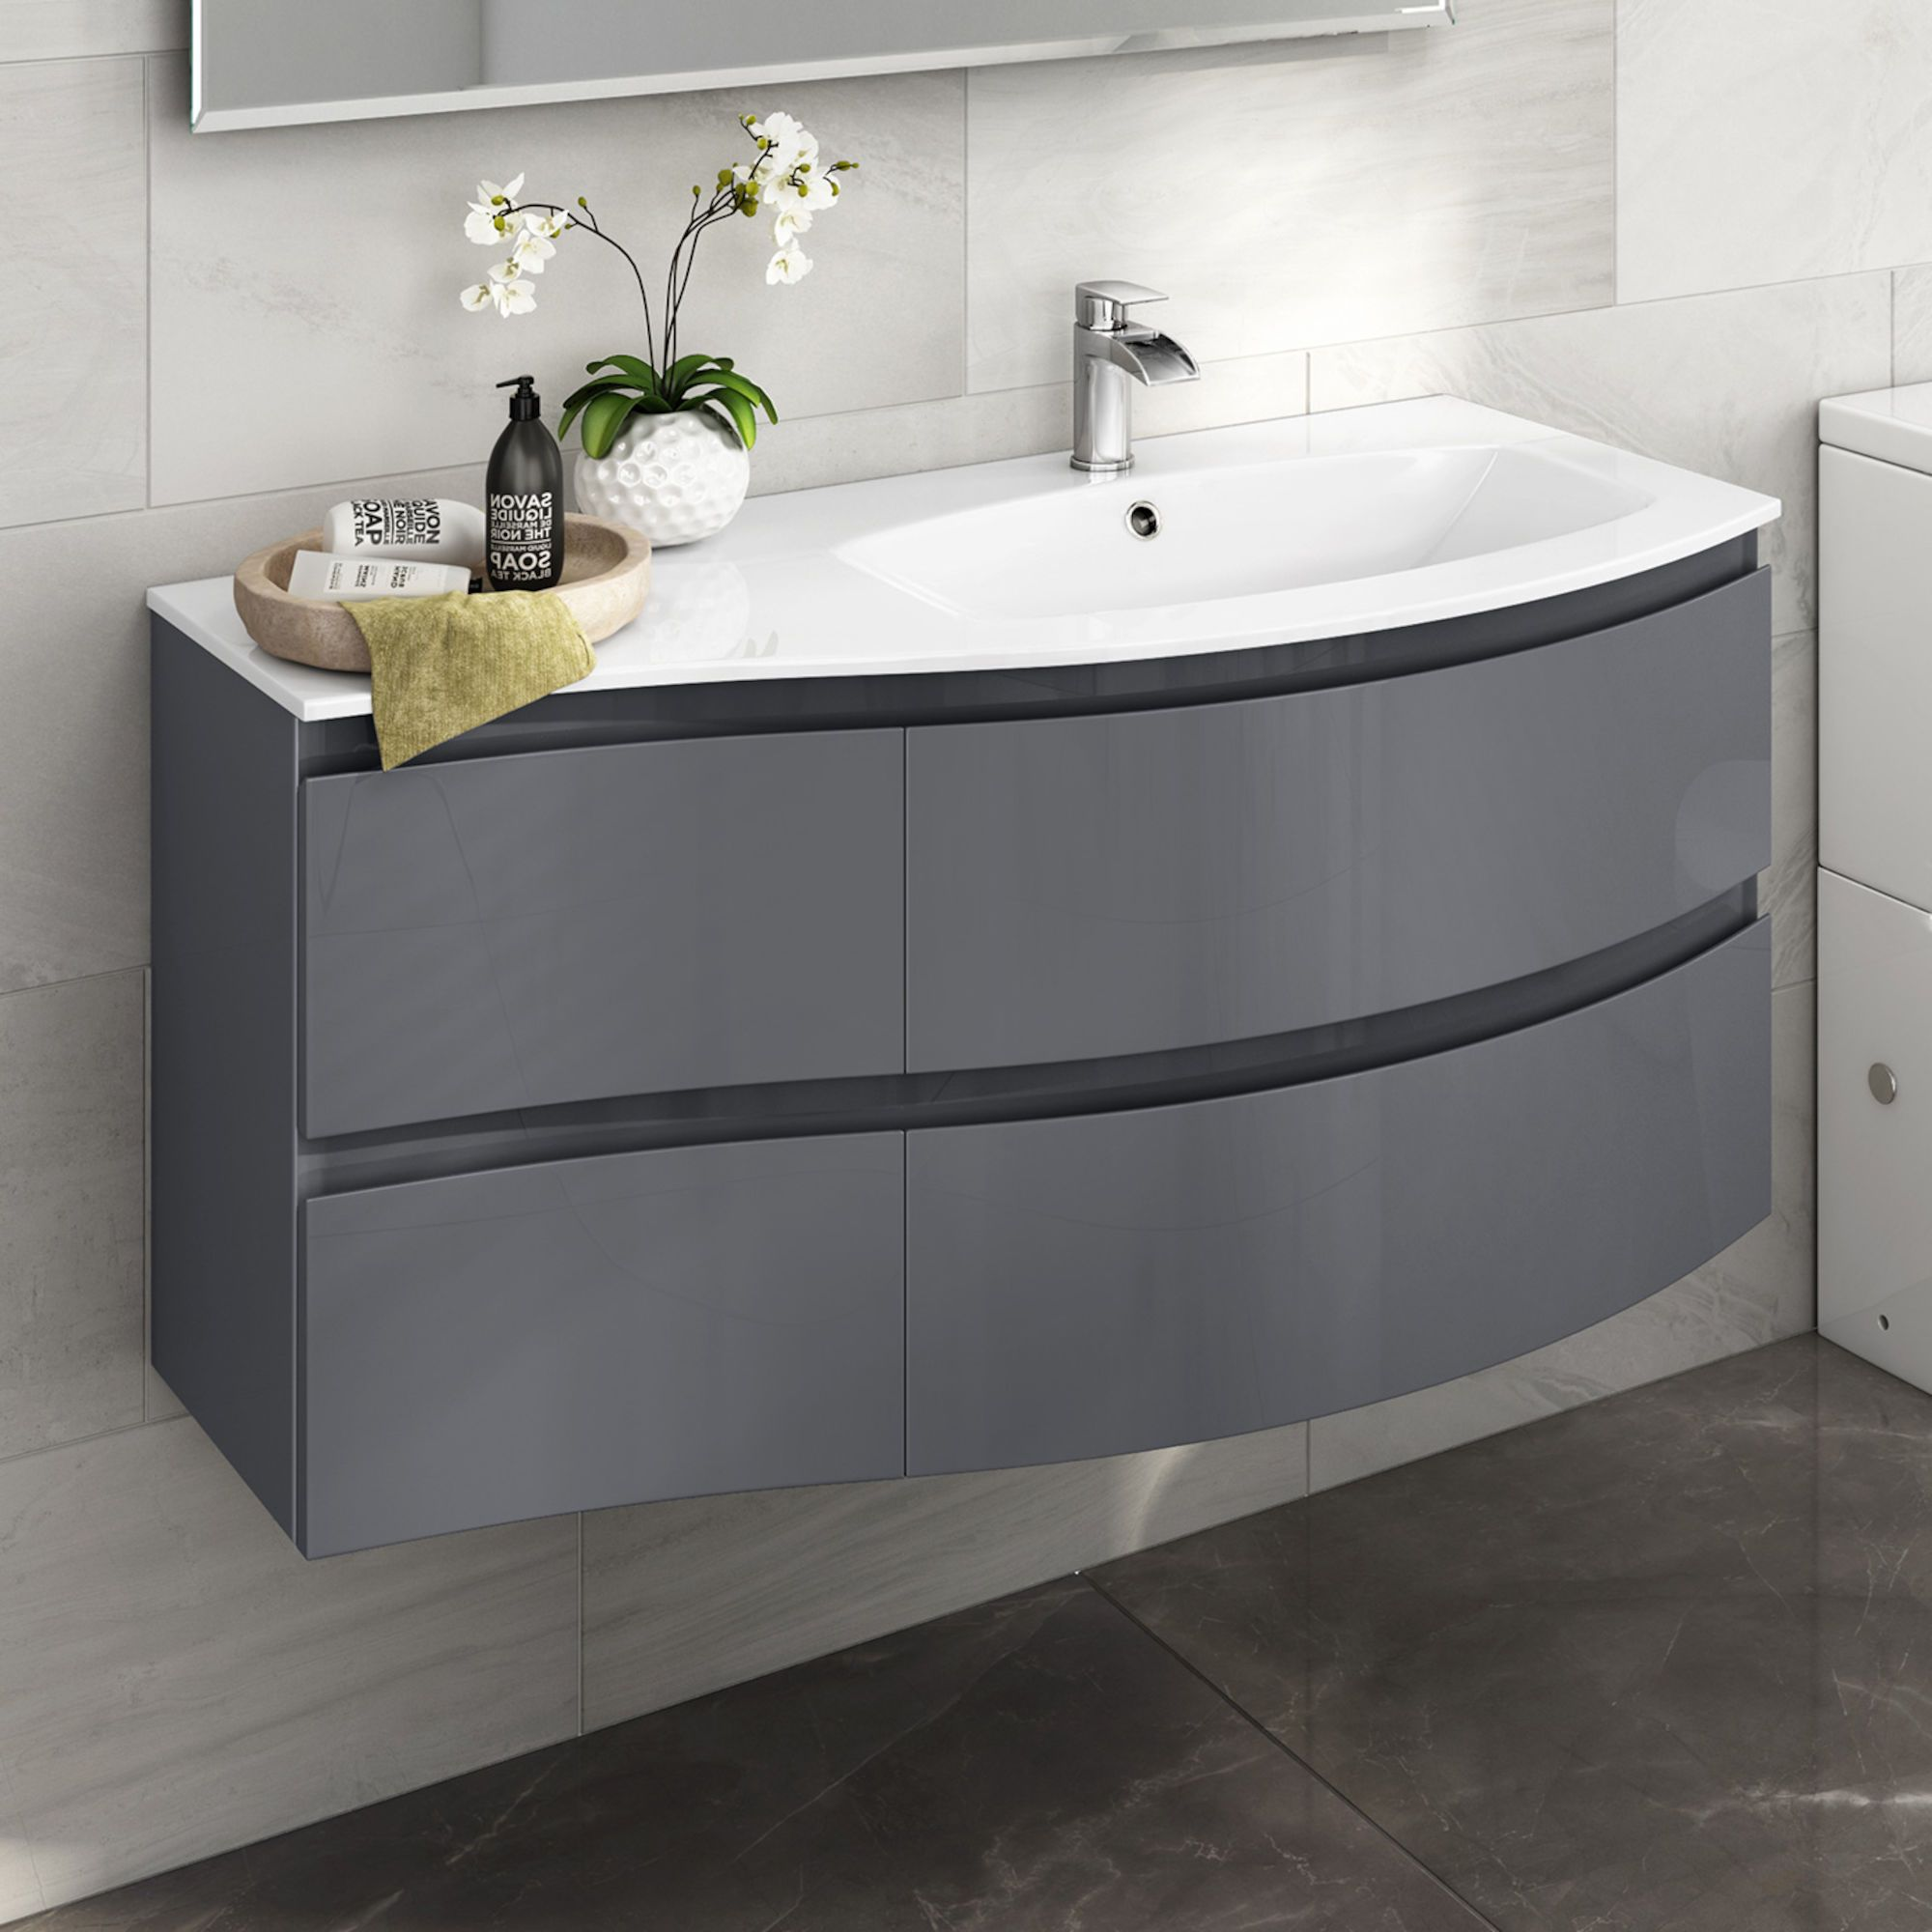 1040mm Amelie Gloss Grey Curved Vanity Unit Right Hand Wall Hung Bathroom Units Basin Sink Bathroom Bathroom Furniture Modern